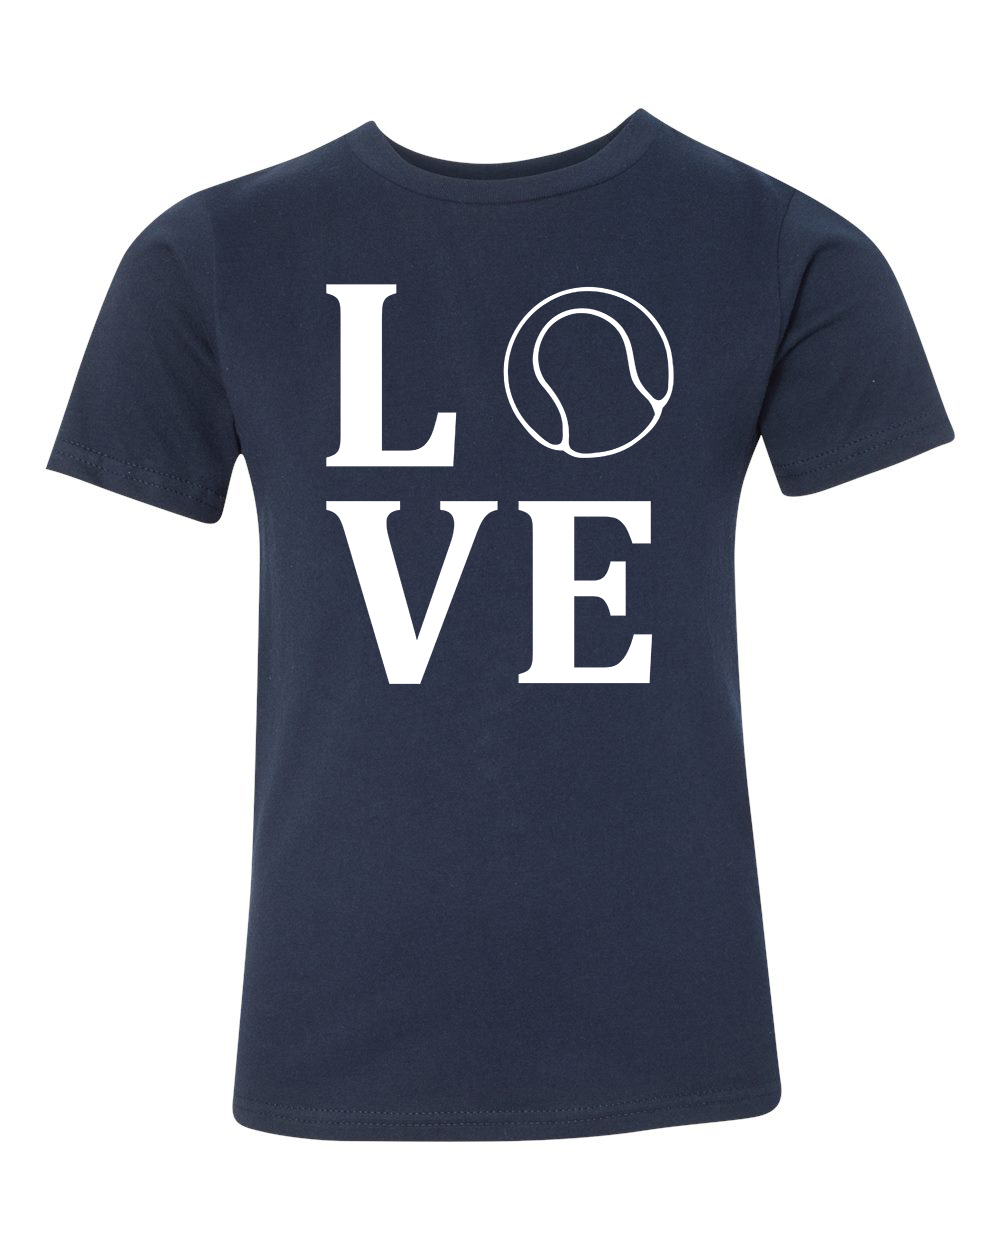 Love Tennis Sports Jersey Youth Short Sleeve T-Shirt